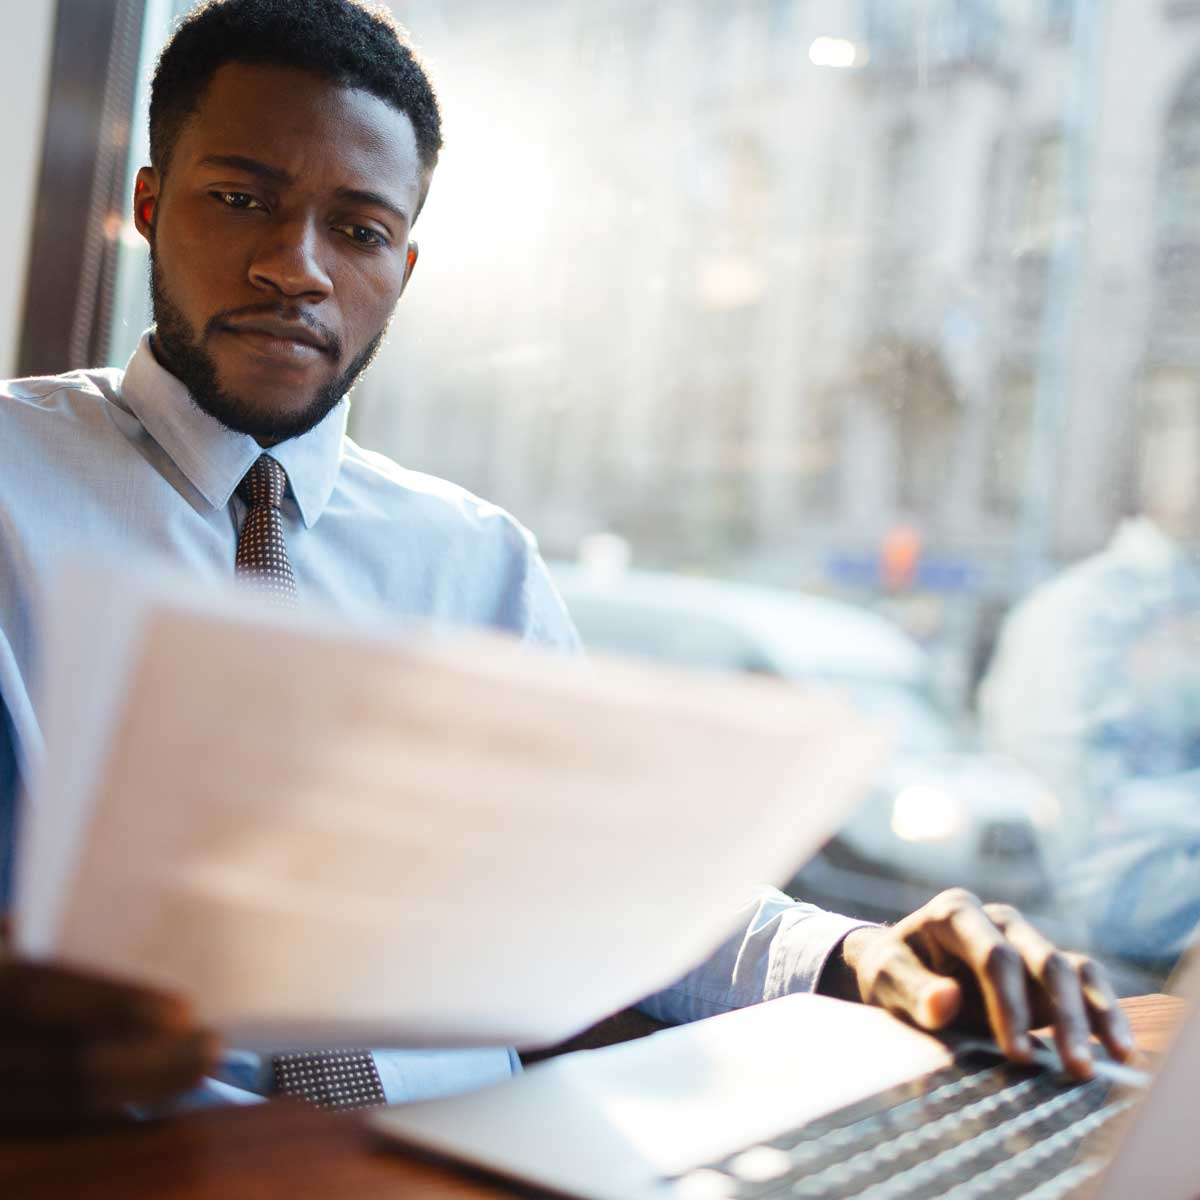 Serious employer reading paperwork with laptop on desk